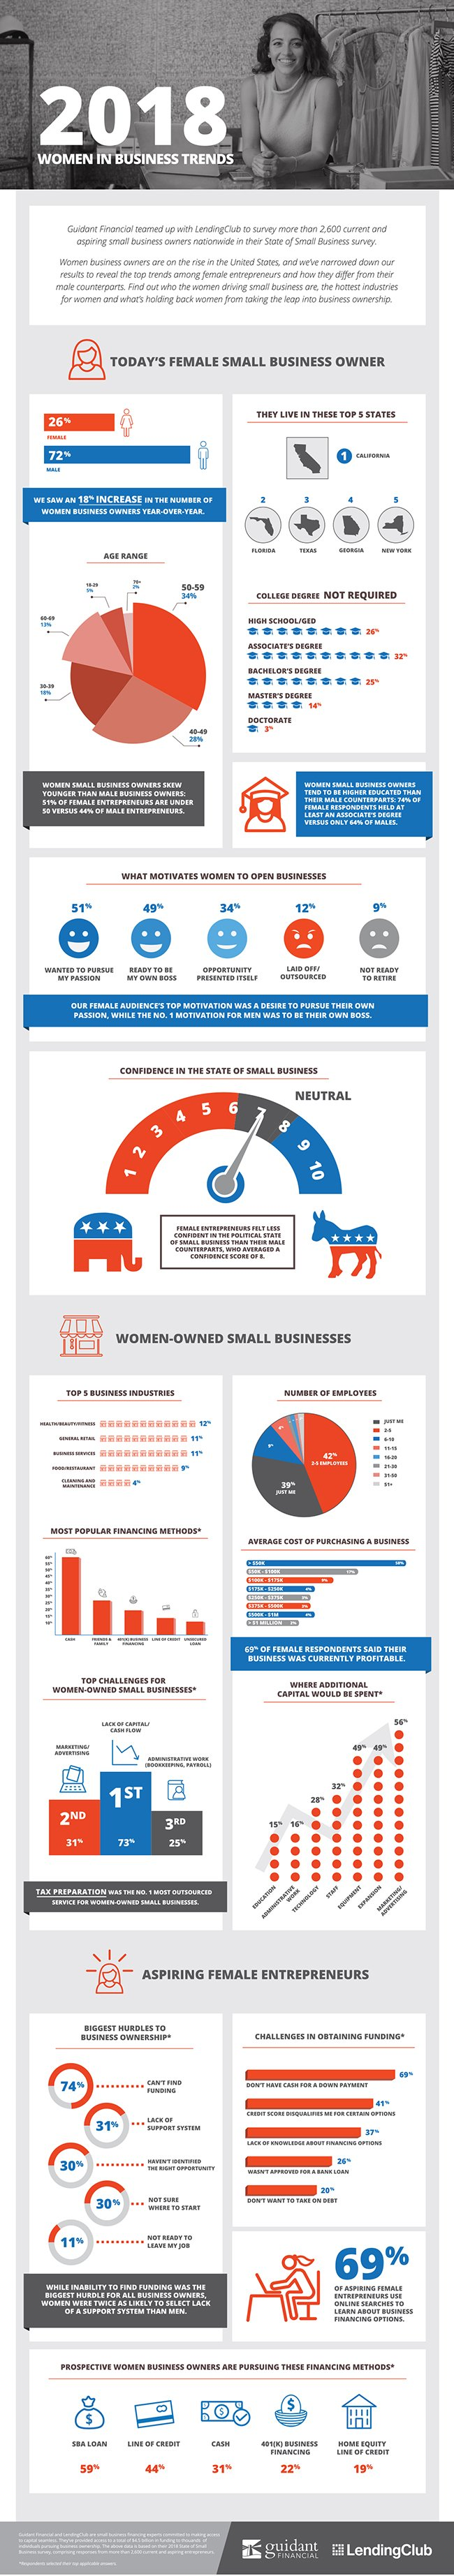 an informational graphic about current trends for women in business in 2018